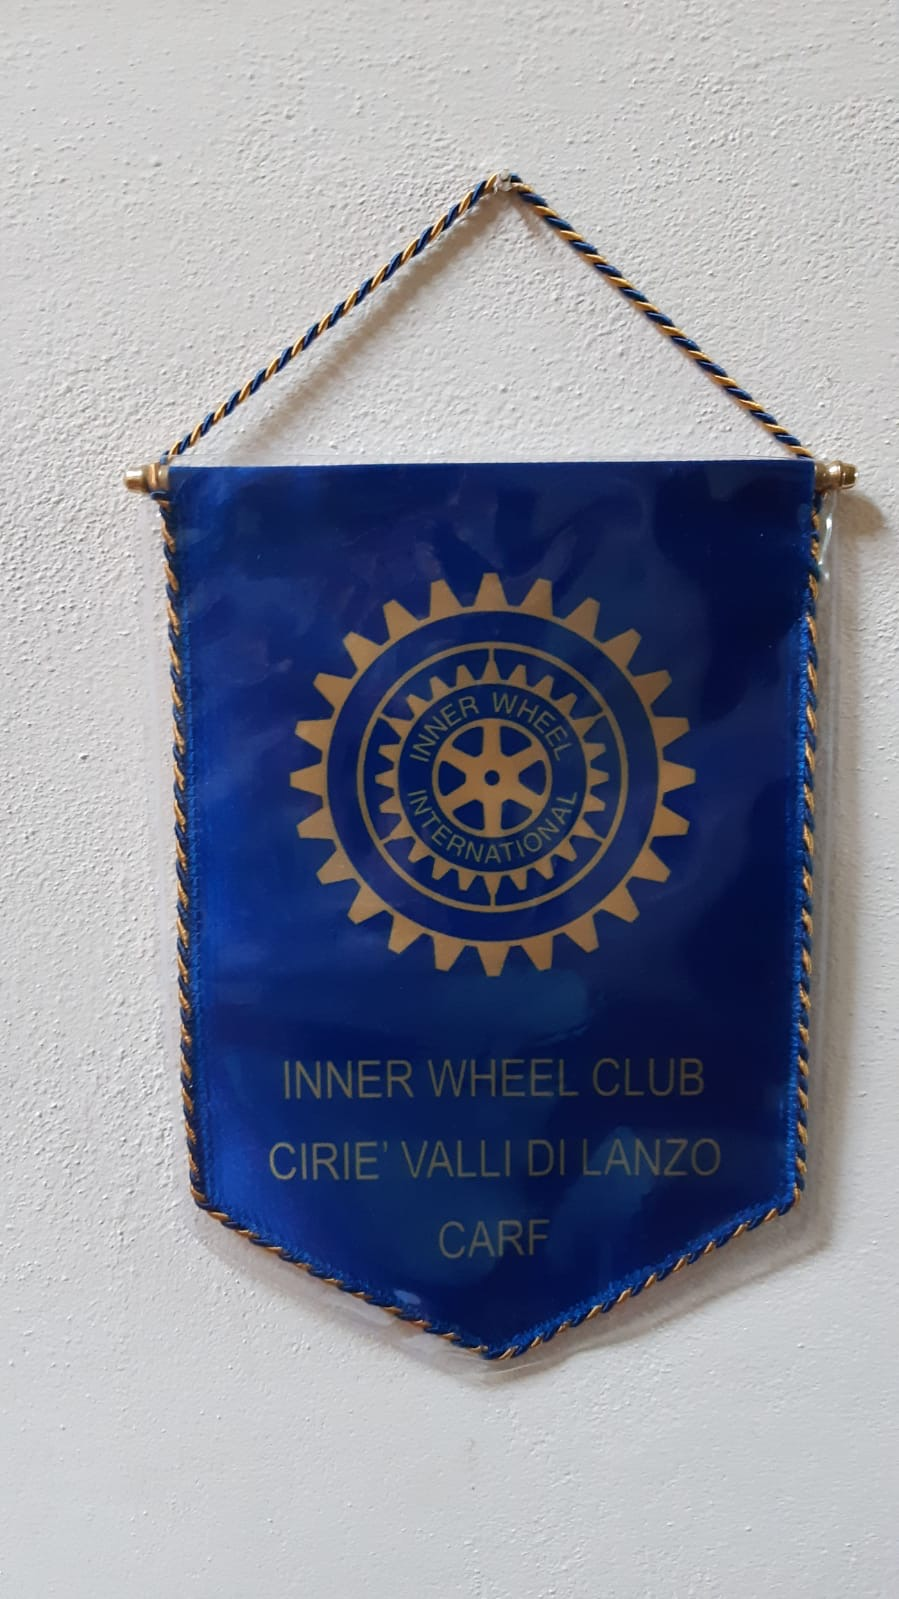 IN PUNTA DI CUORE RINGRAZIA INNER WHEEL CLUB